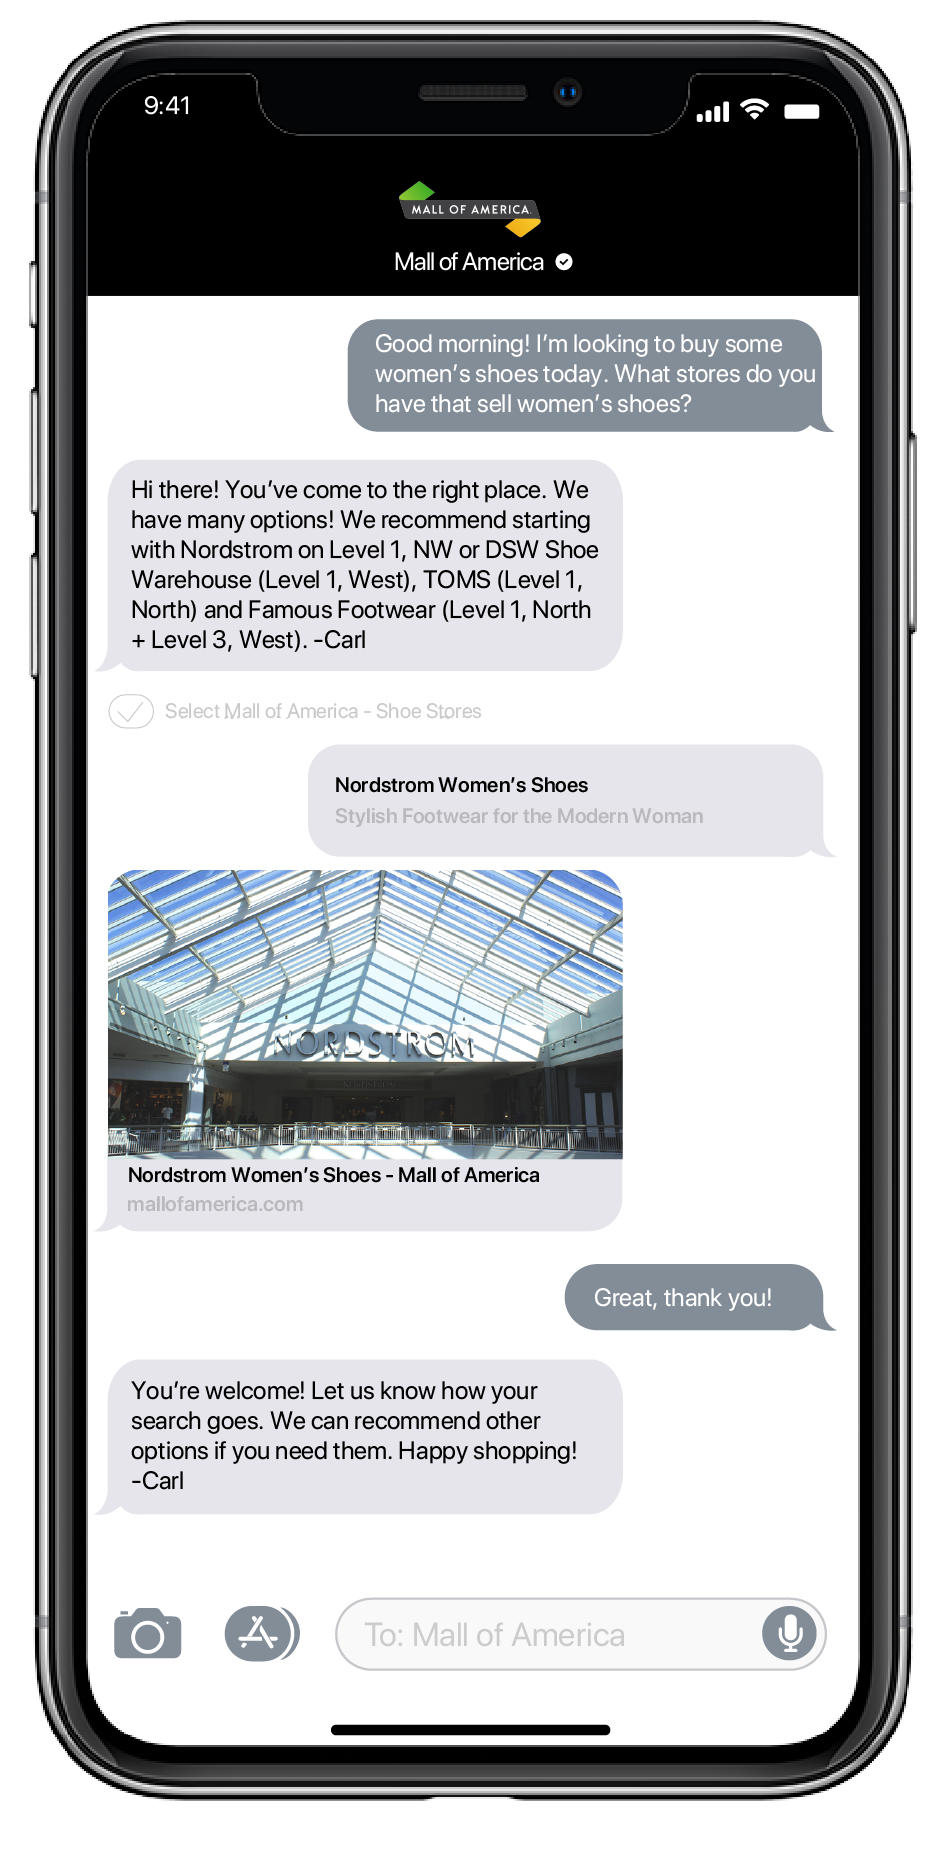 Mall of America Apple Business Chat Messaging Example